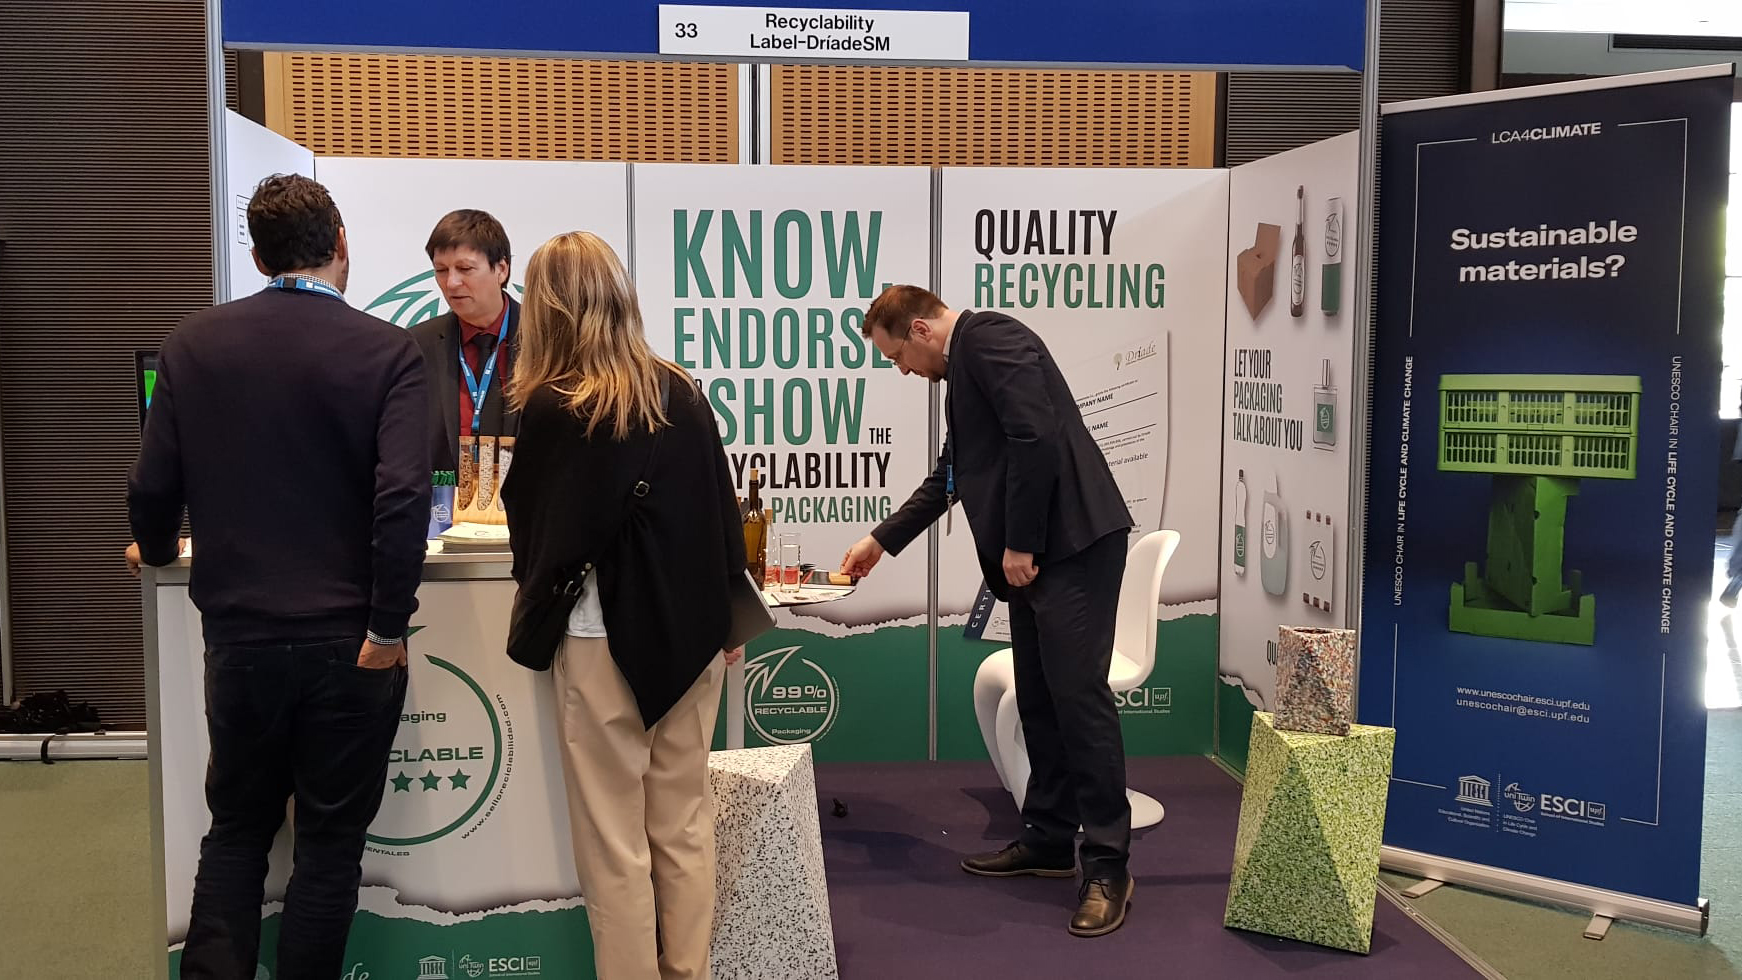 LCA4Climate at Sustainability in packaging 2019